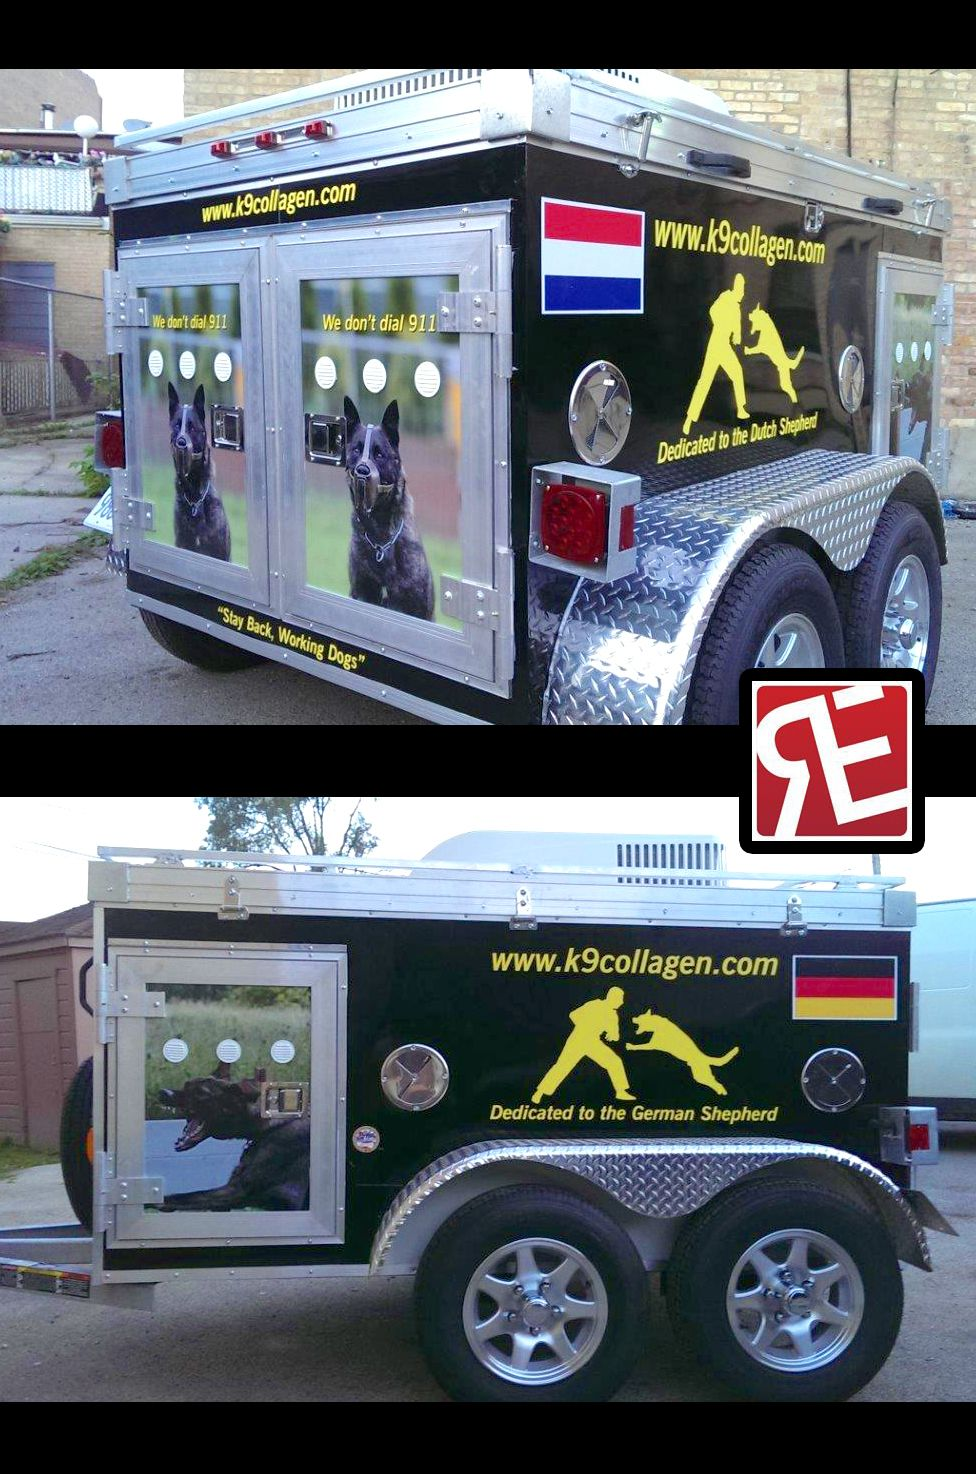 Heres a cool k9 trailer wrap printed and installed by